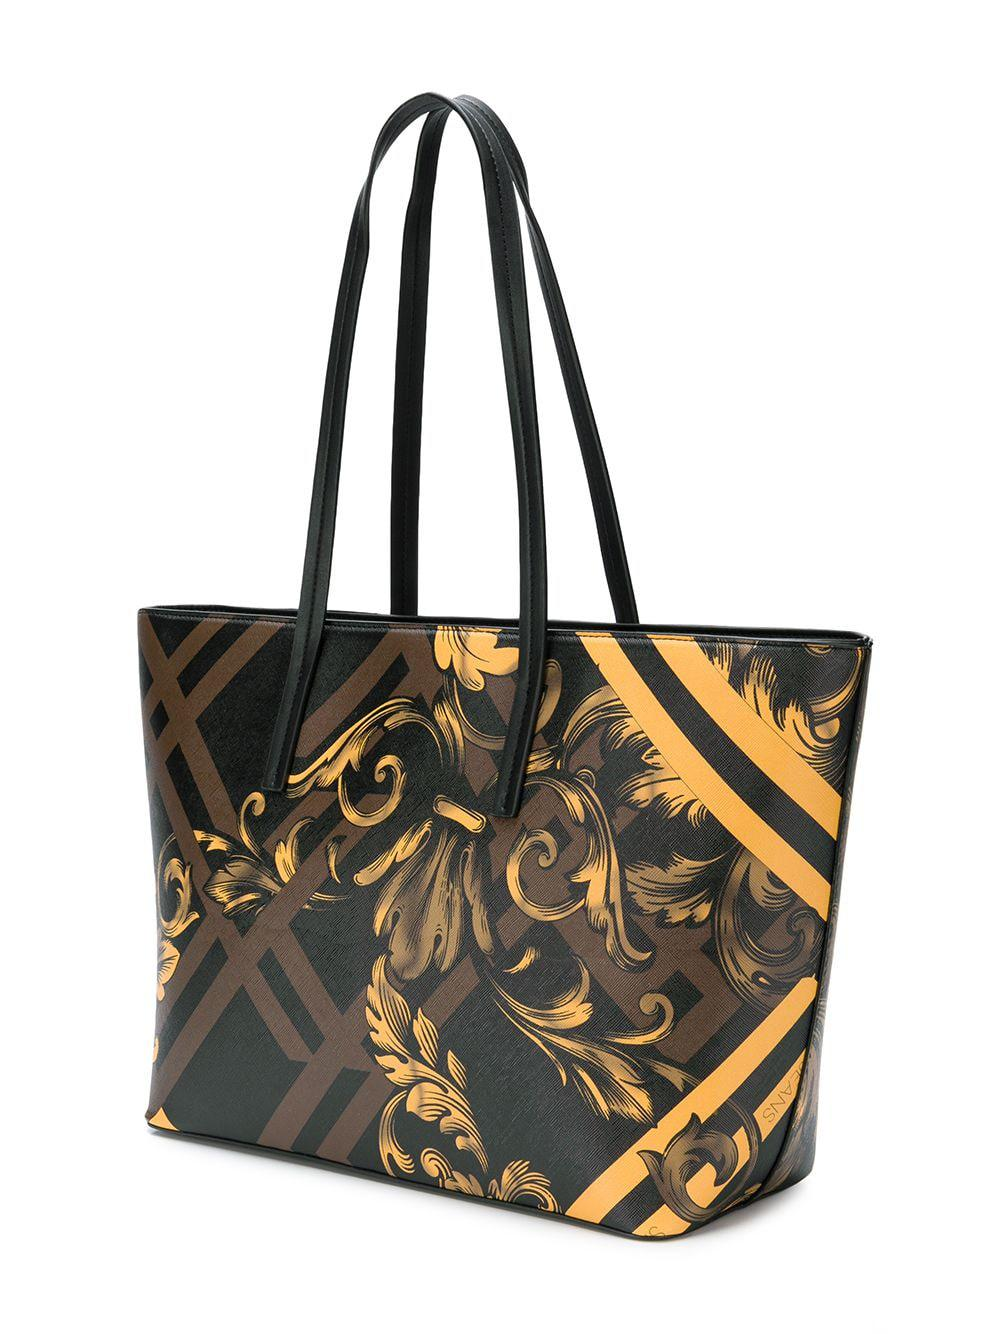 74449a0e50 Lyst - Versace Jeans Baroque Print Shopper Tote in Brown